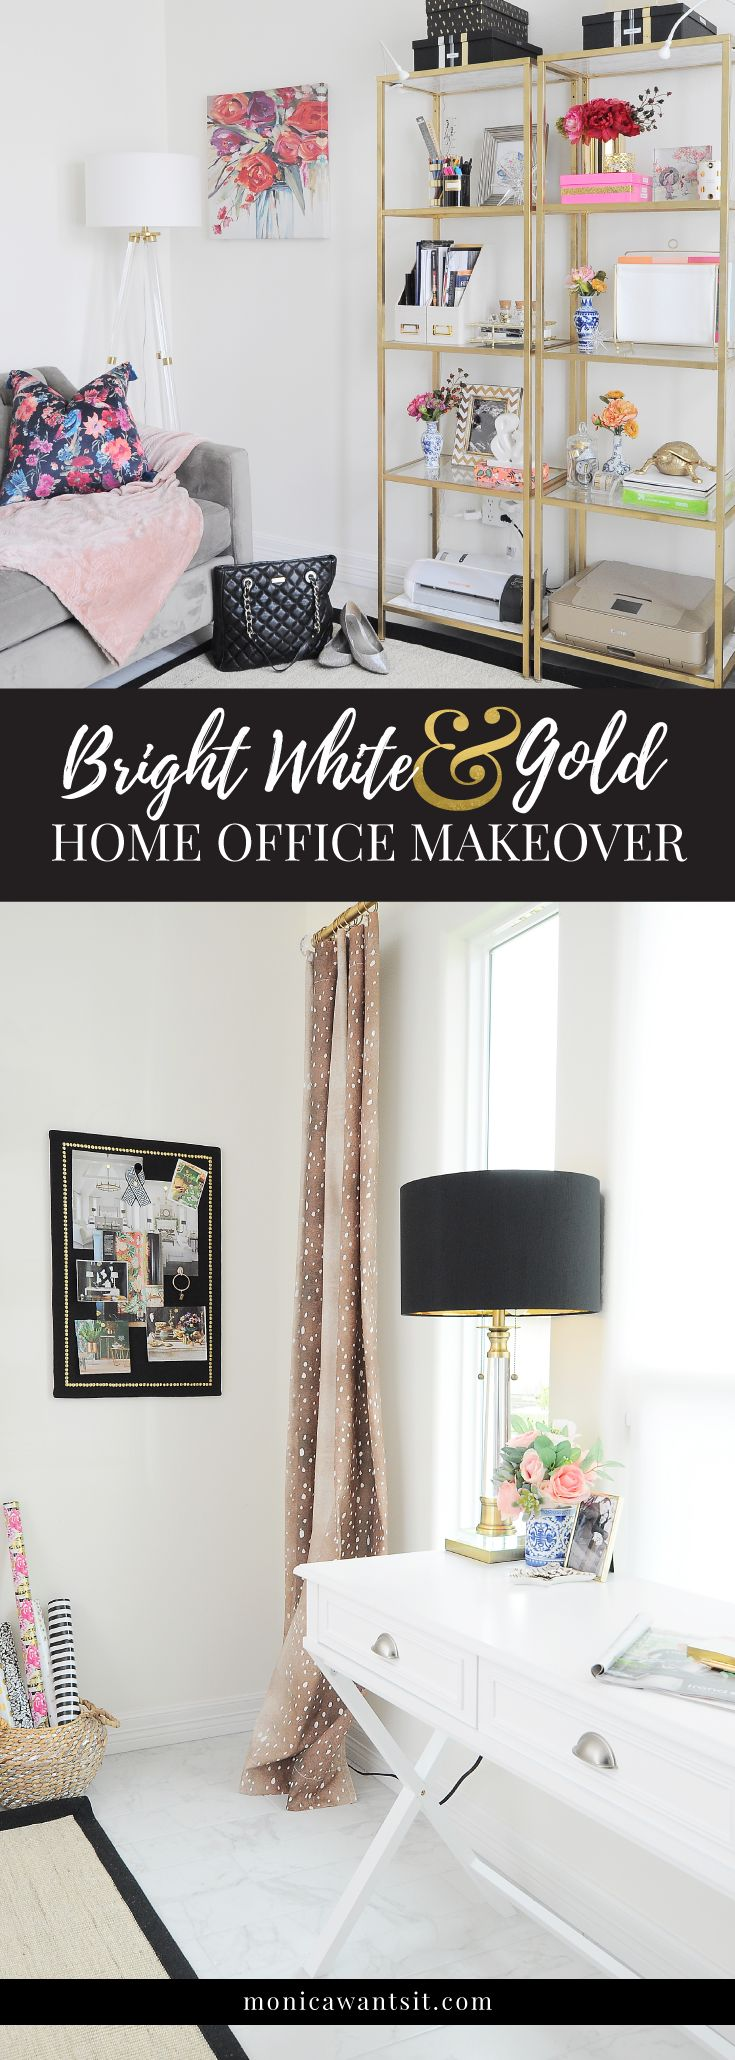 A bright white and gold home office